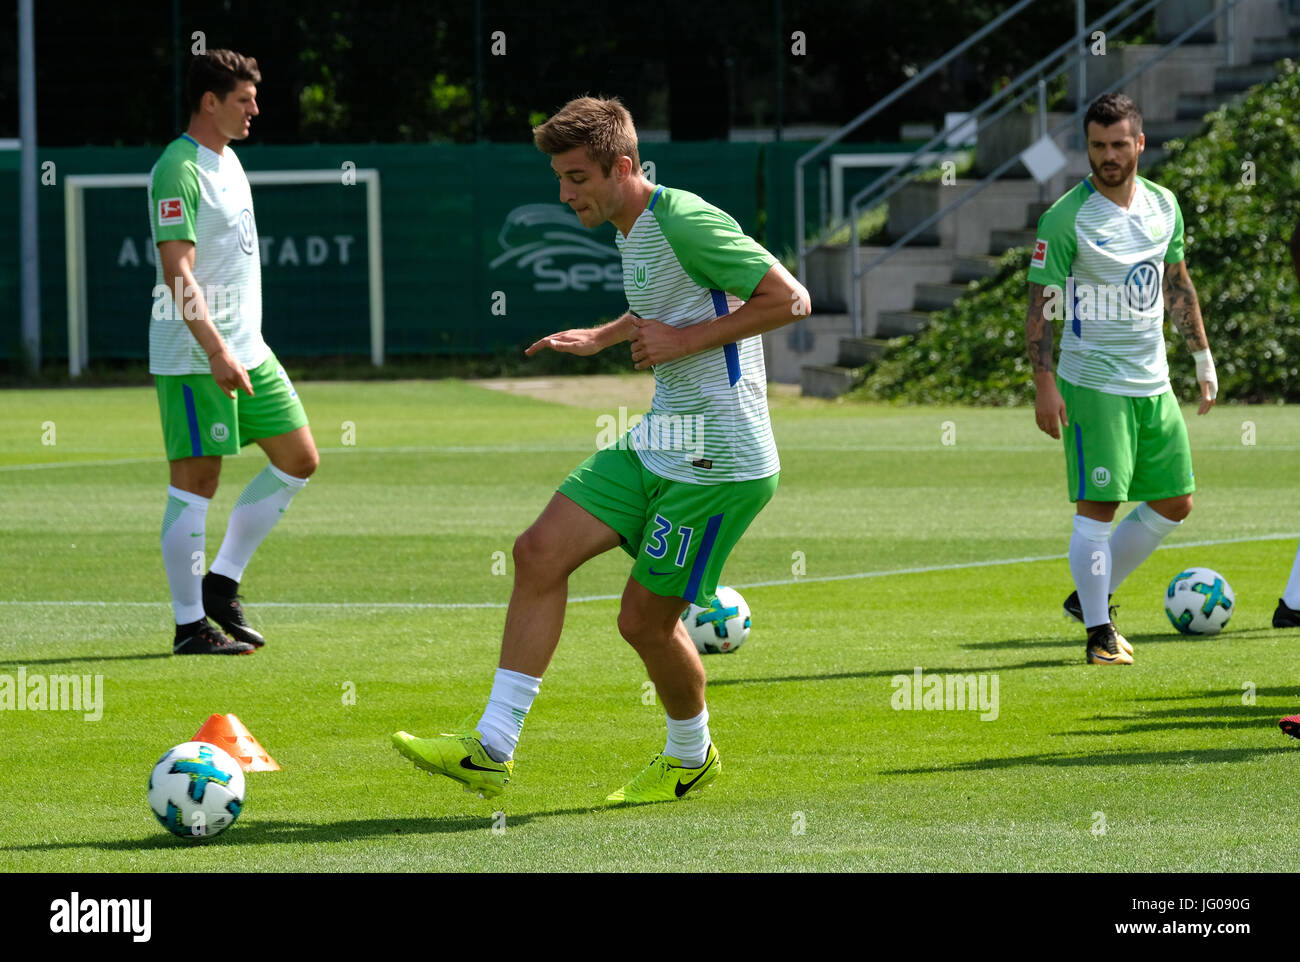 Wolfsburg, Germany. 3rd July, 2017. Wolfsburg's player Robin Knoche plays the ball during a training session - Stock Image